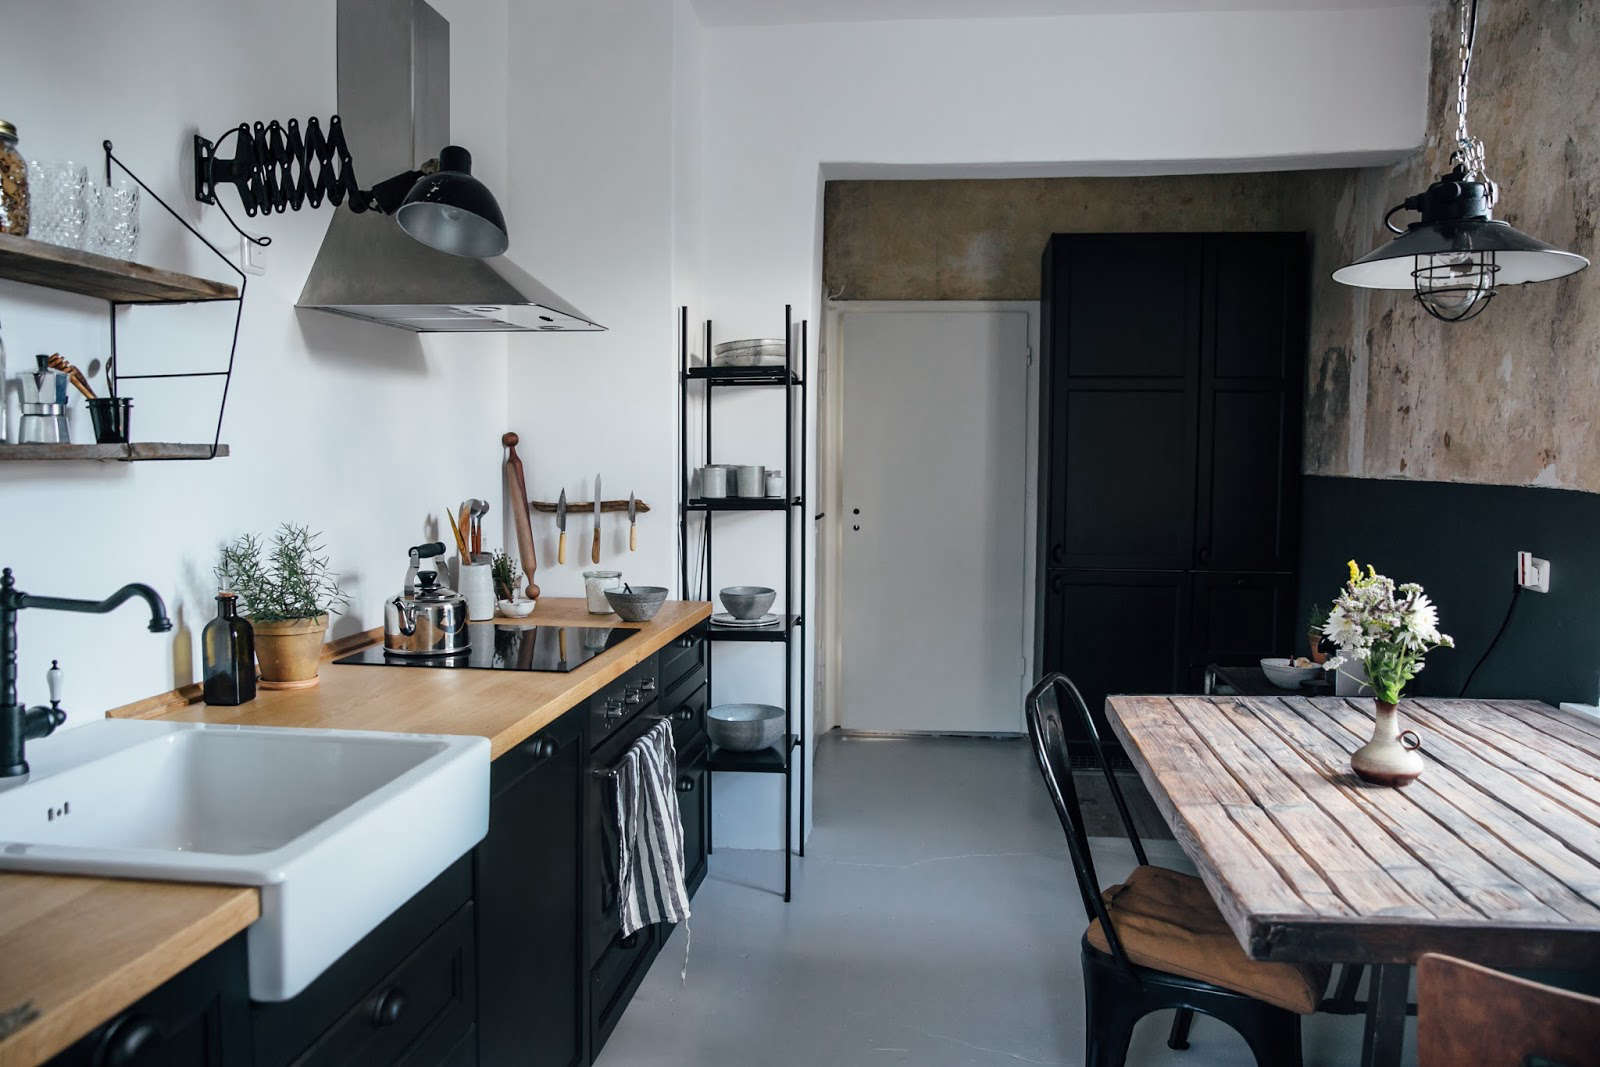 Country Küche Ikea Kitchen Of The Week A Diy Ikea Country Kitchen For Two Berlin